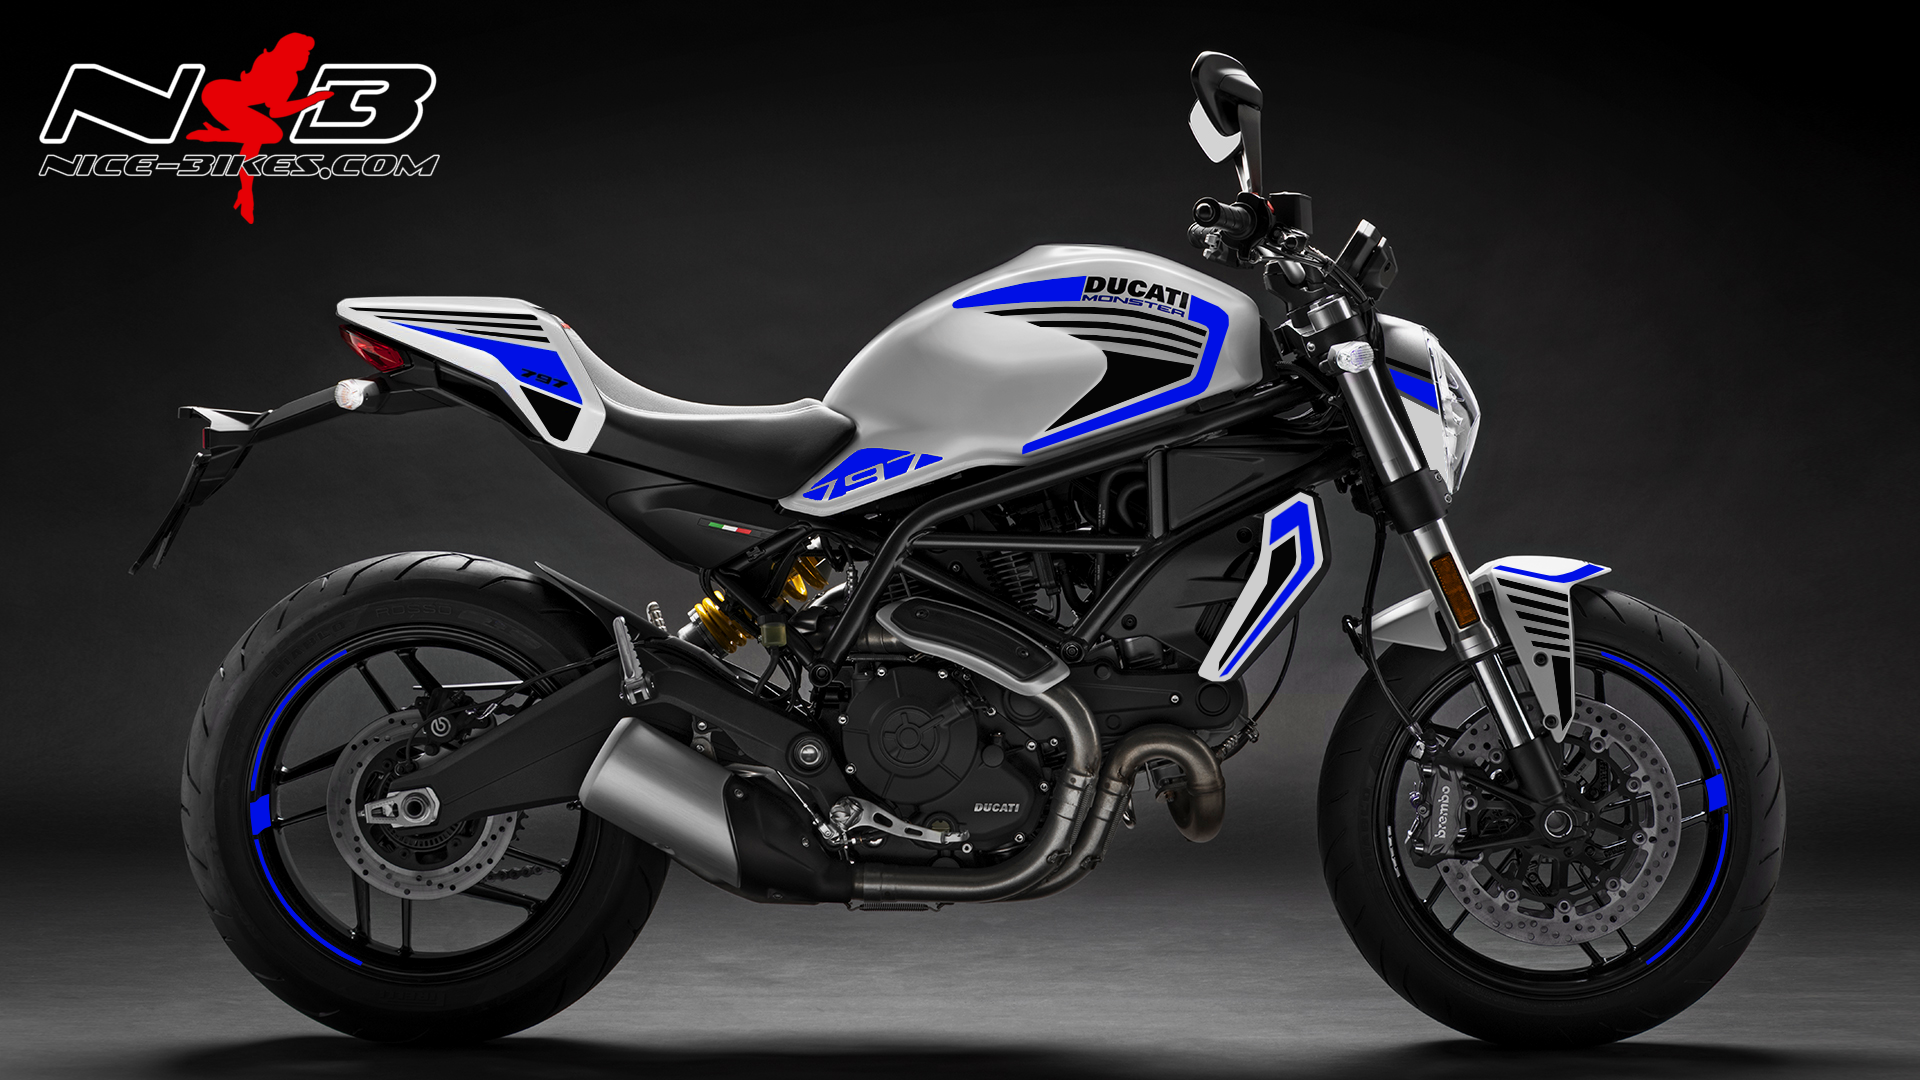 Foliendesign DUCATI  Monster 797 Bj. 2020 Racing Blue